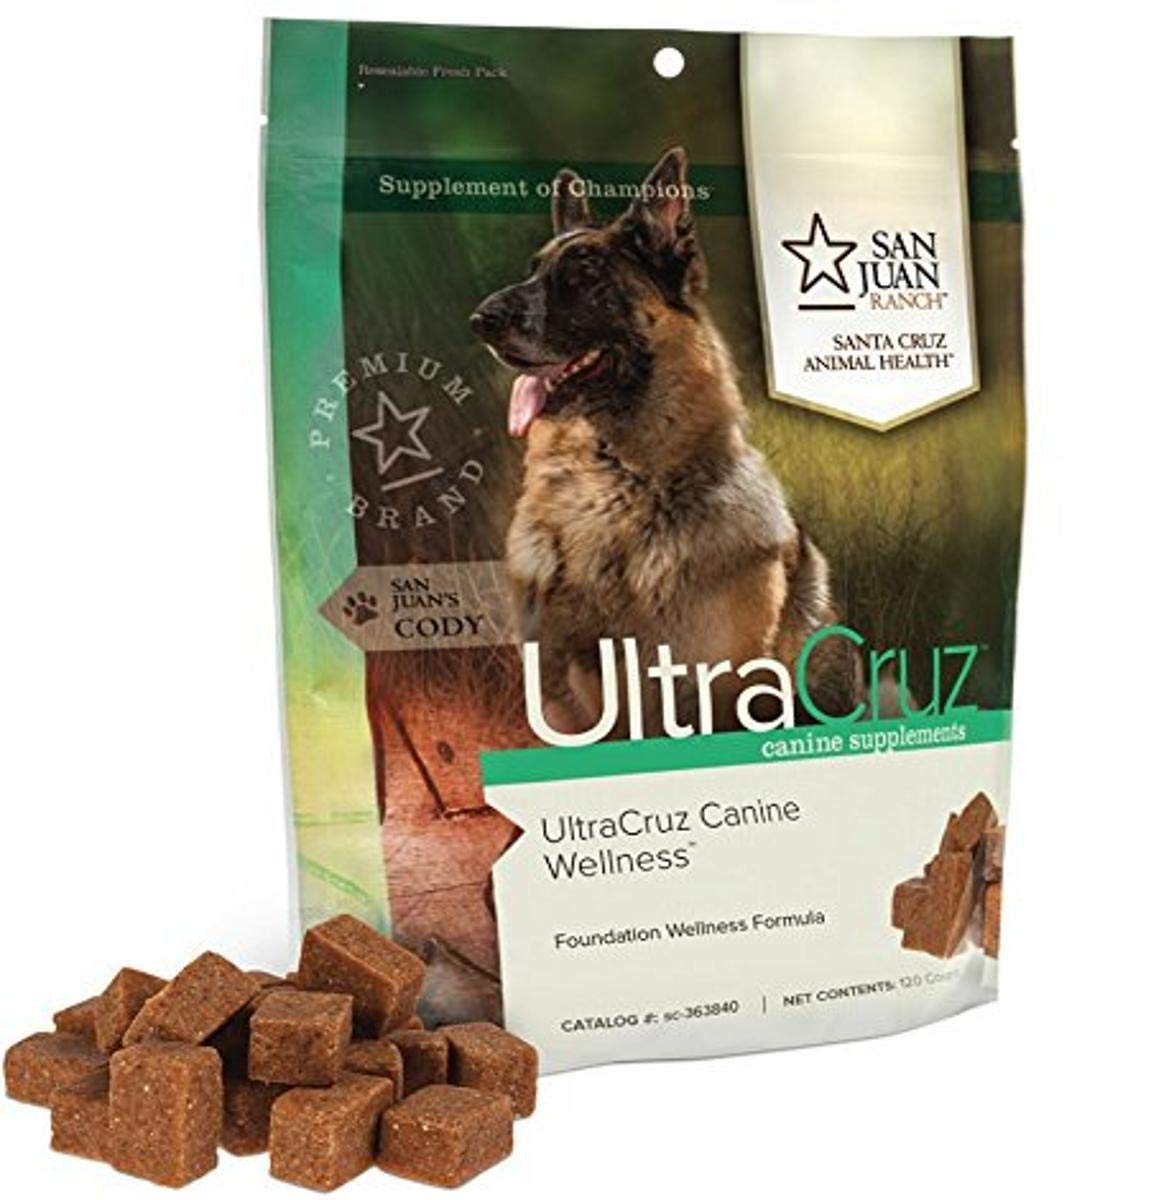 UltraCruz Canine Wellness Supplement for Tasty Dogs Chews 120 Very Manufacturer regenerated product popular